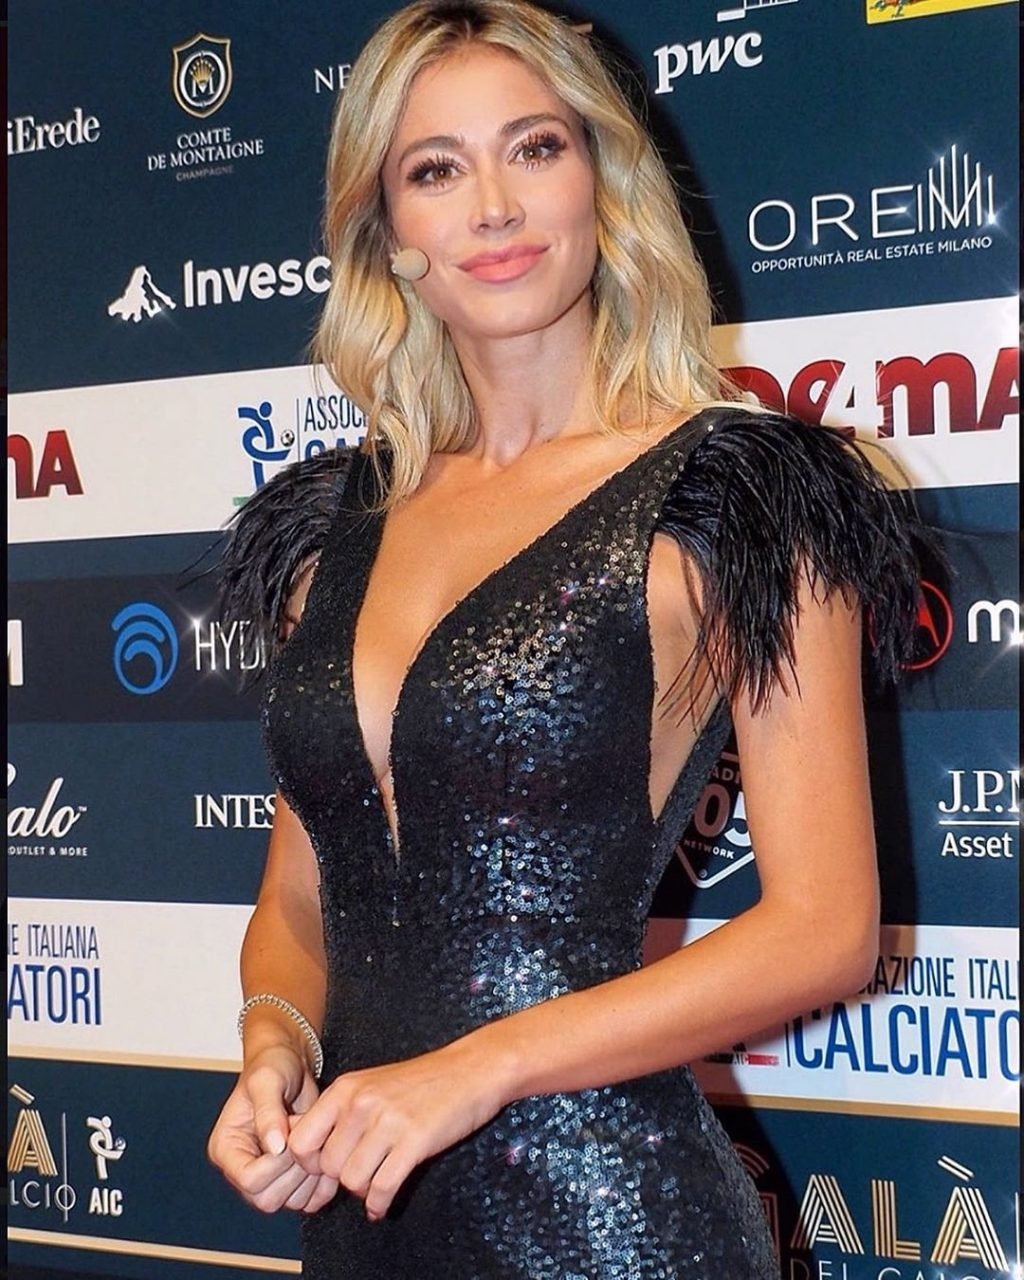 Diletta Leotta Sexy (74 Photos)